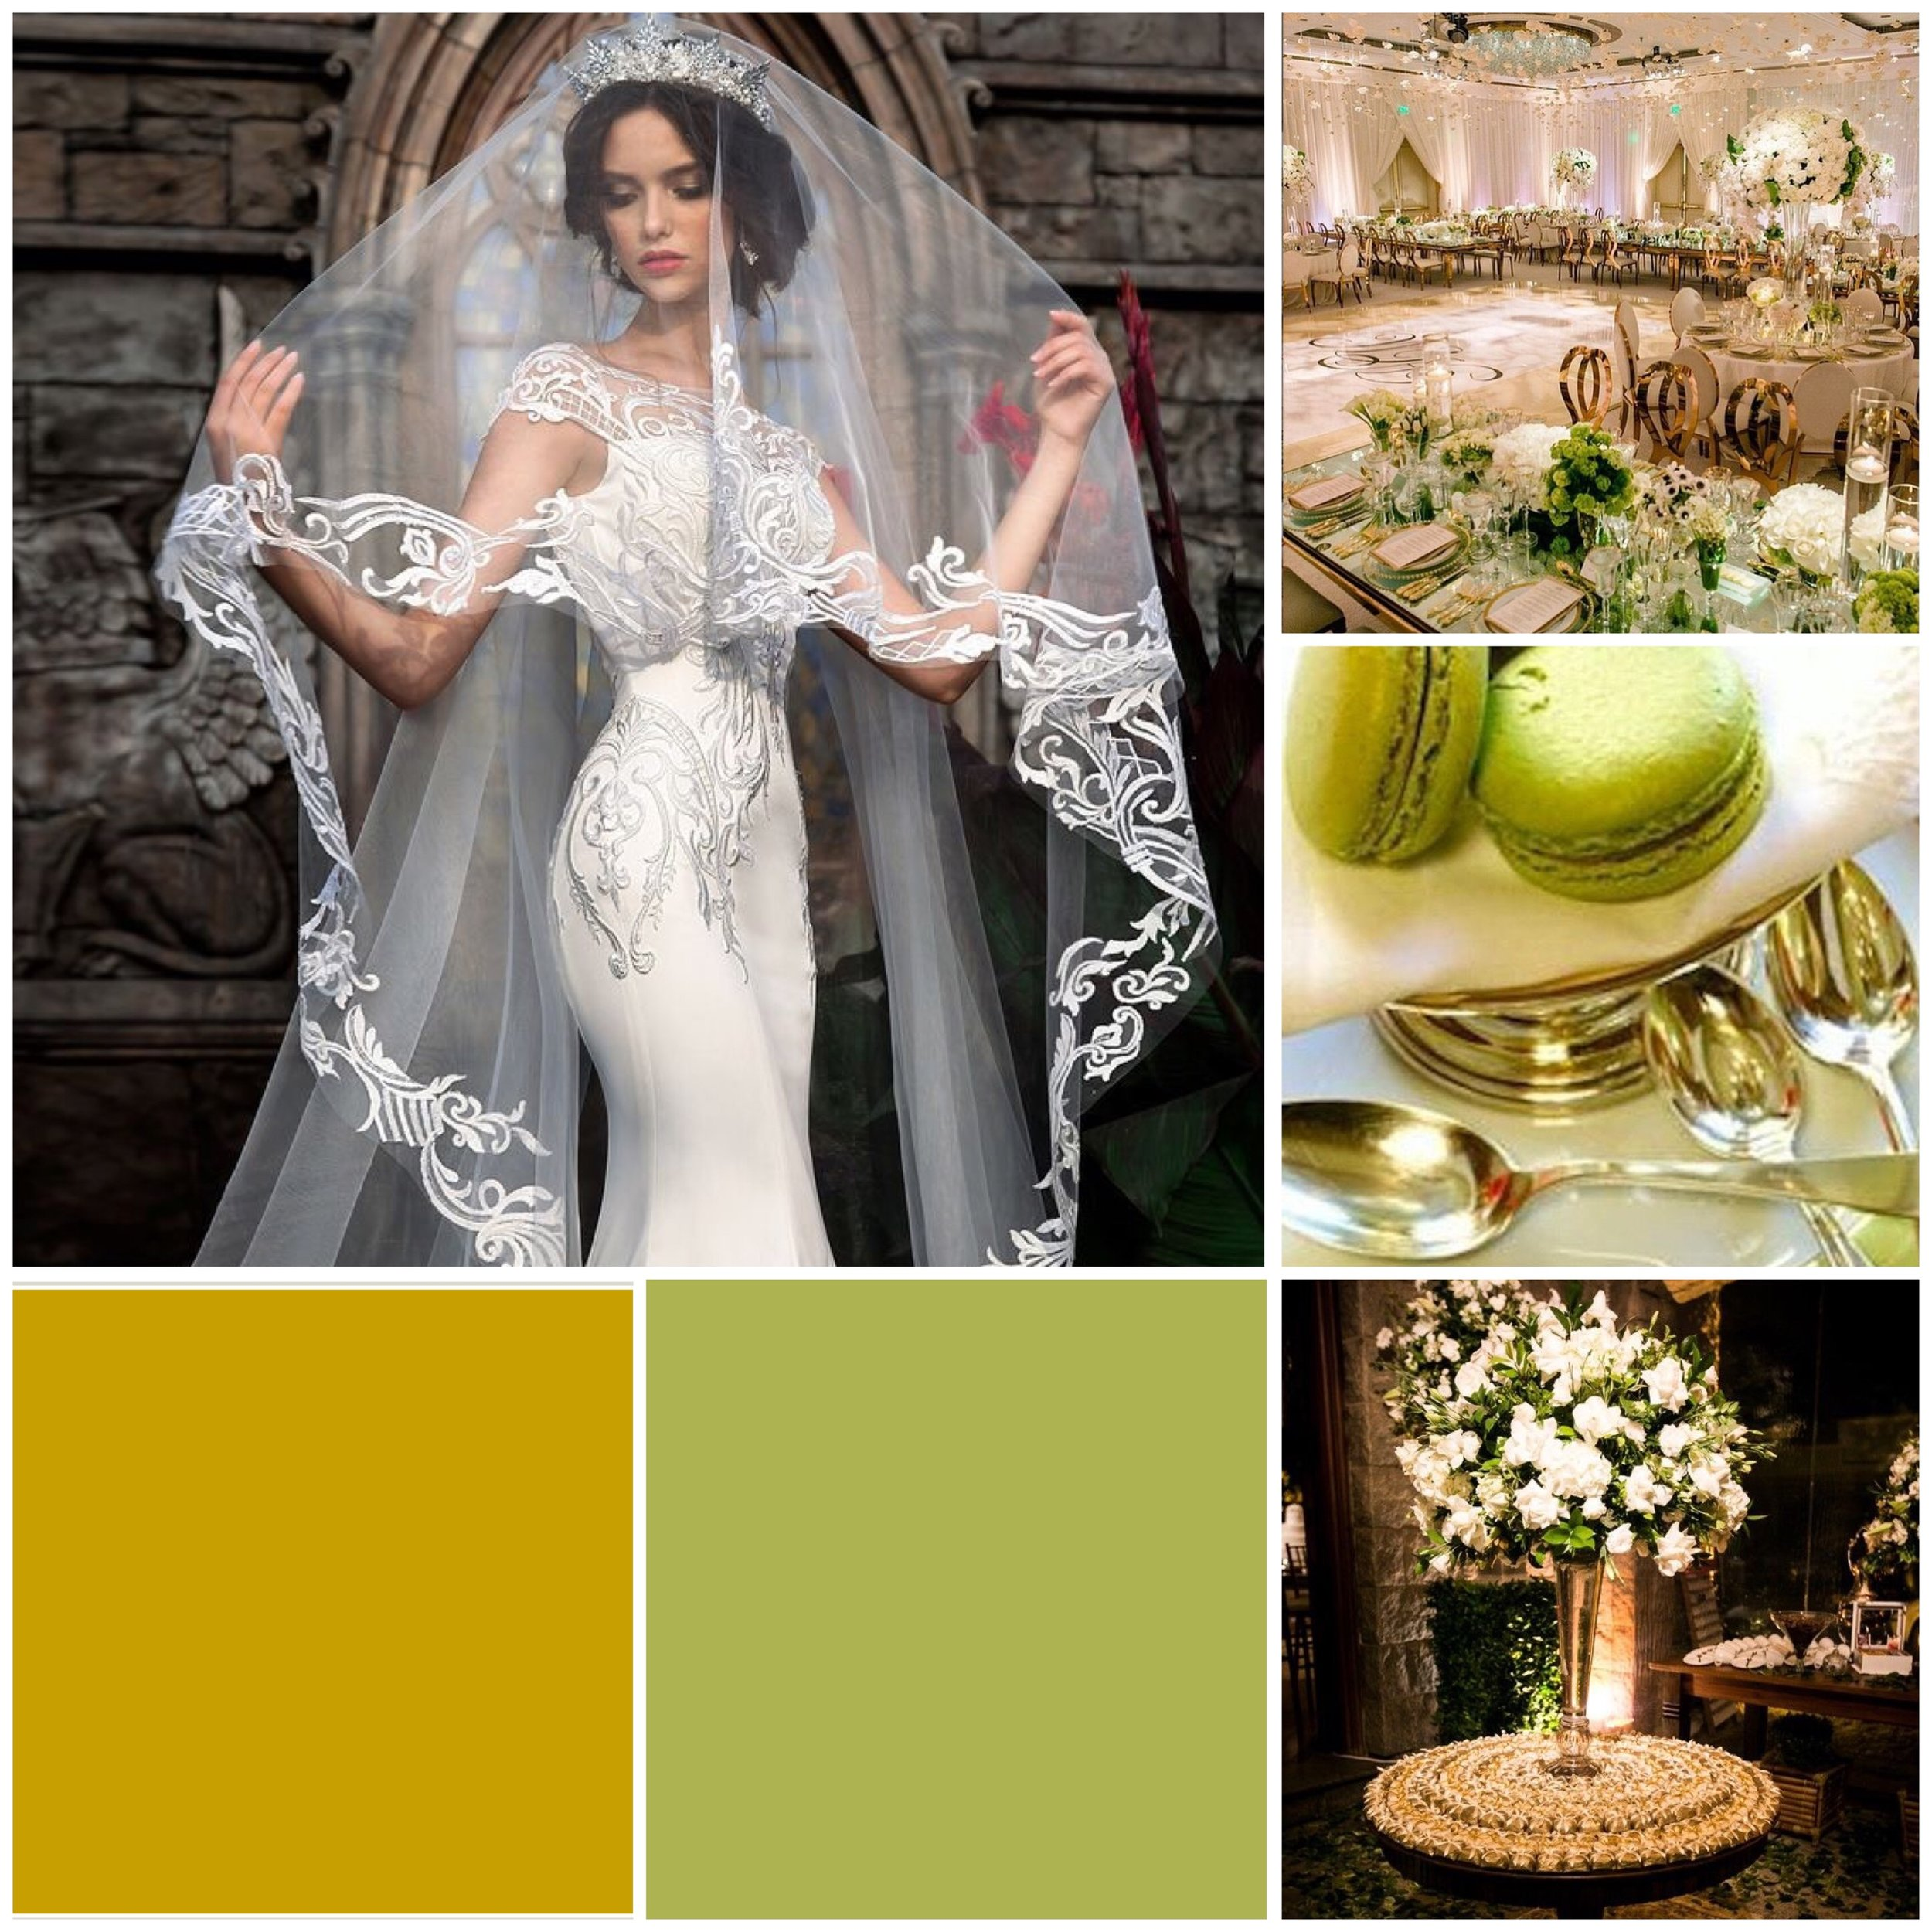 Green Oasis & Gold Moodboard for your wedding inspiration.